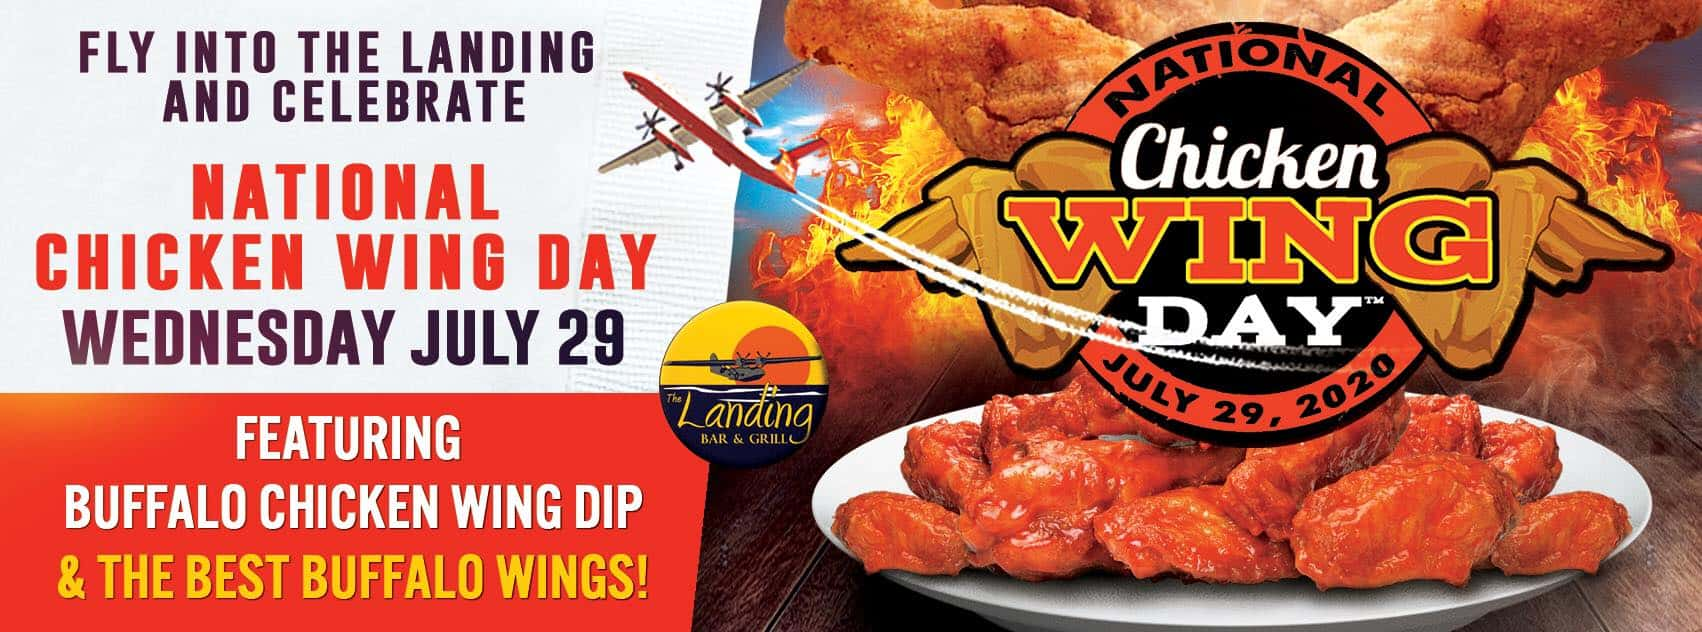 National-Chicken-wing-day-2020